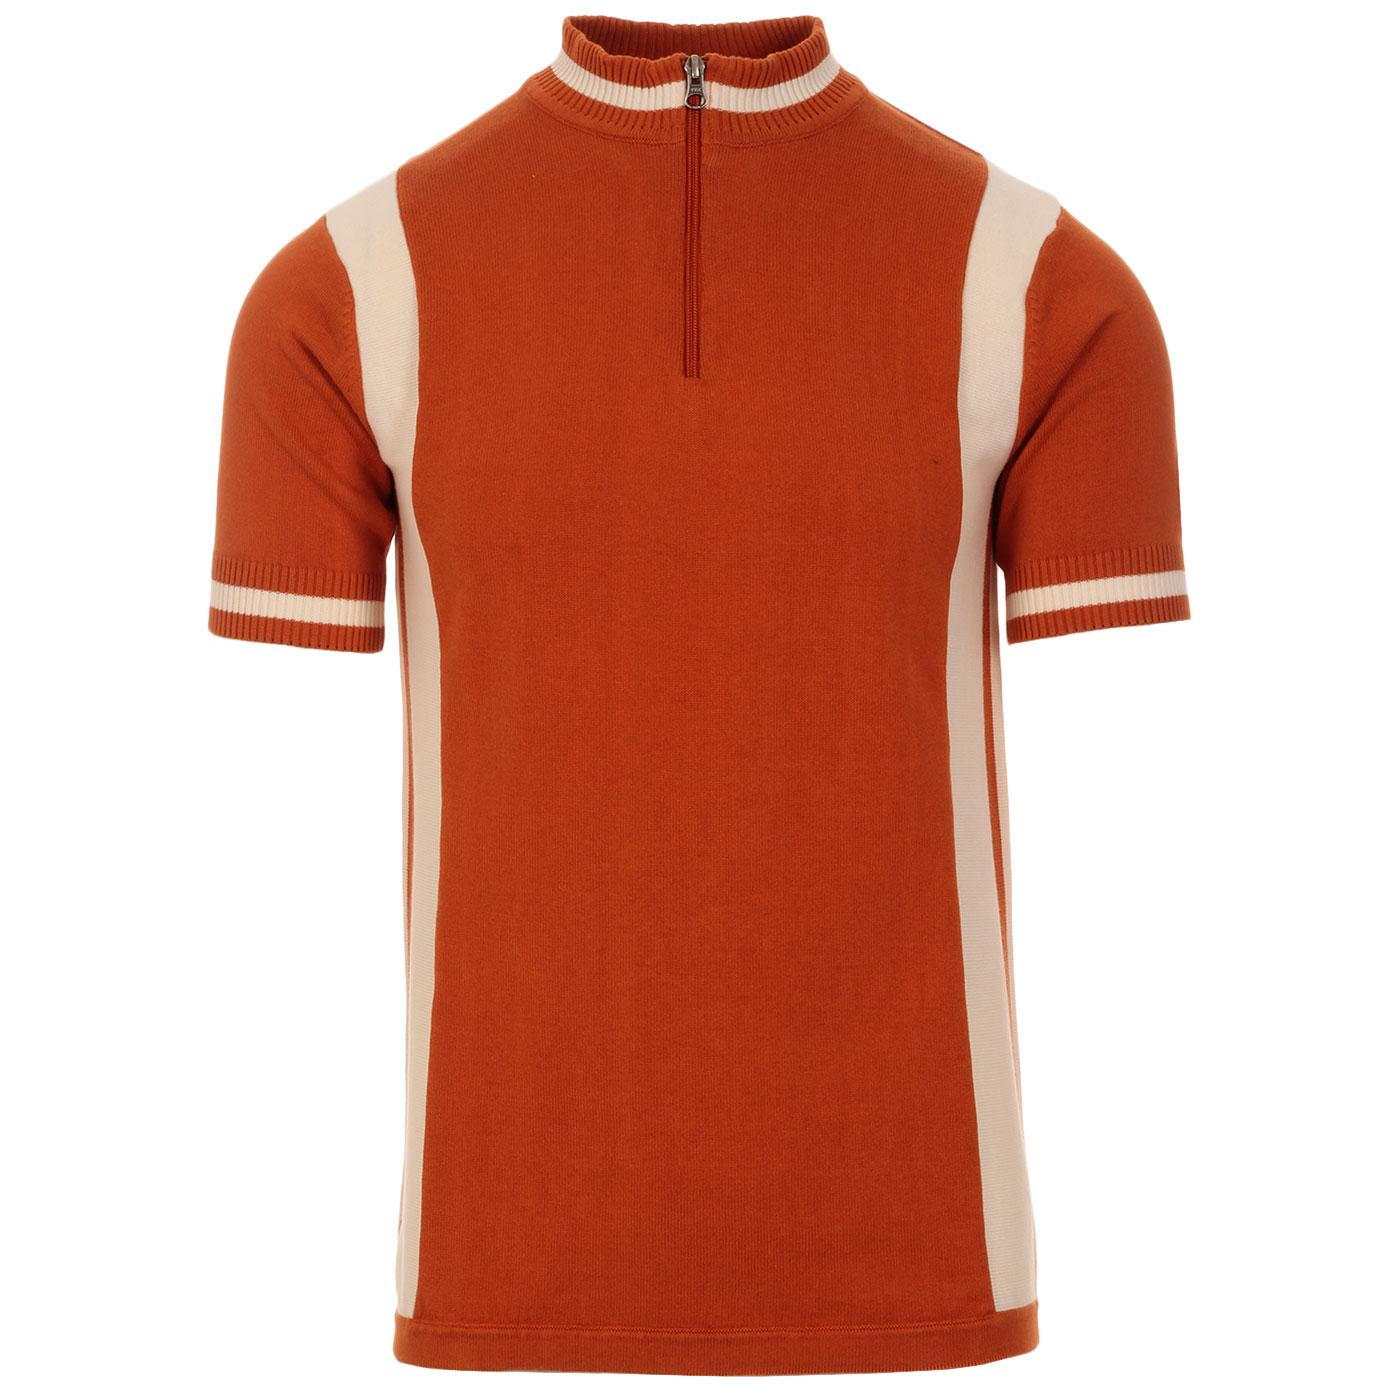 Madcap England Vitesse Retro Mod Knitted Zip Neck Cycling Top in Rust